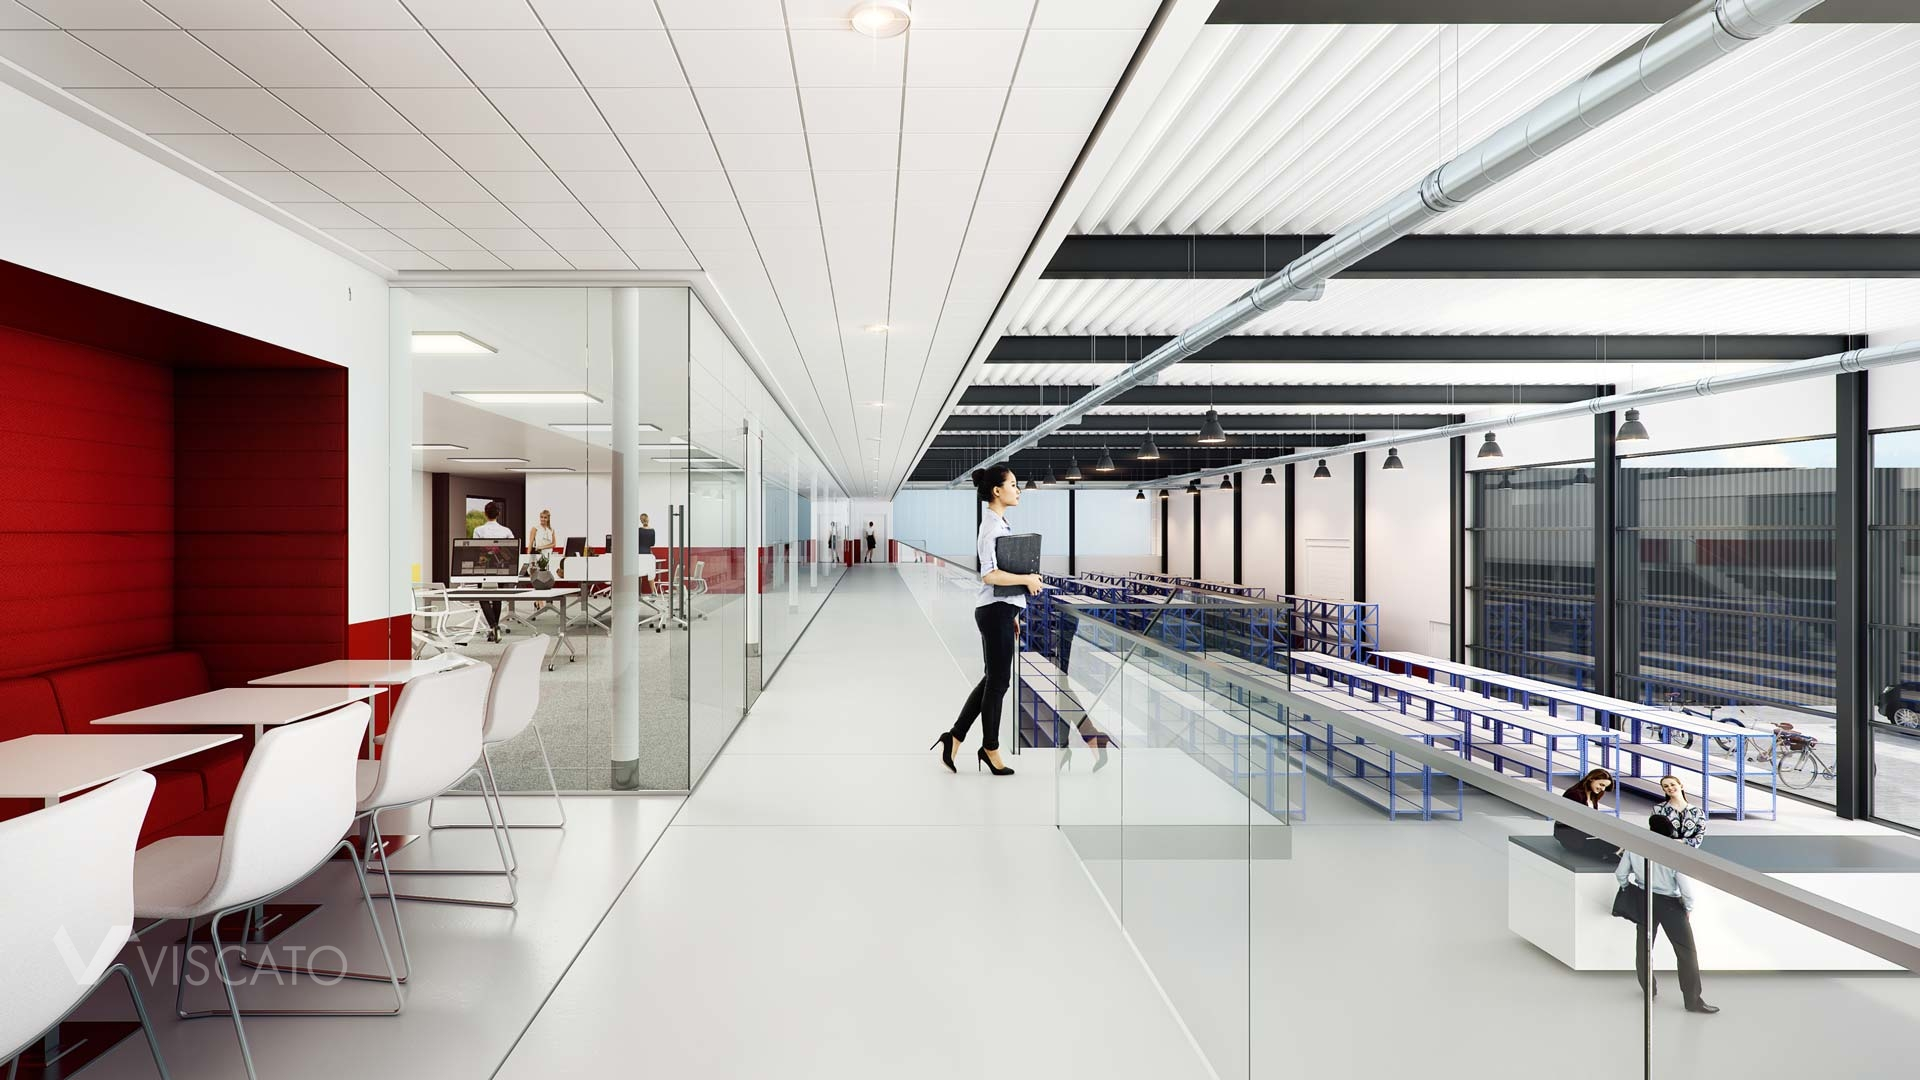 3D interiors of a company building, 3ds Max